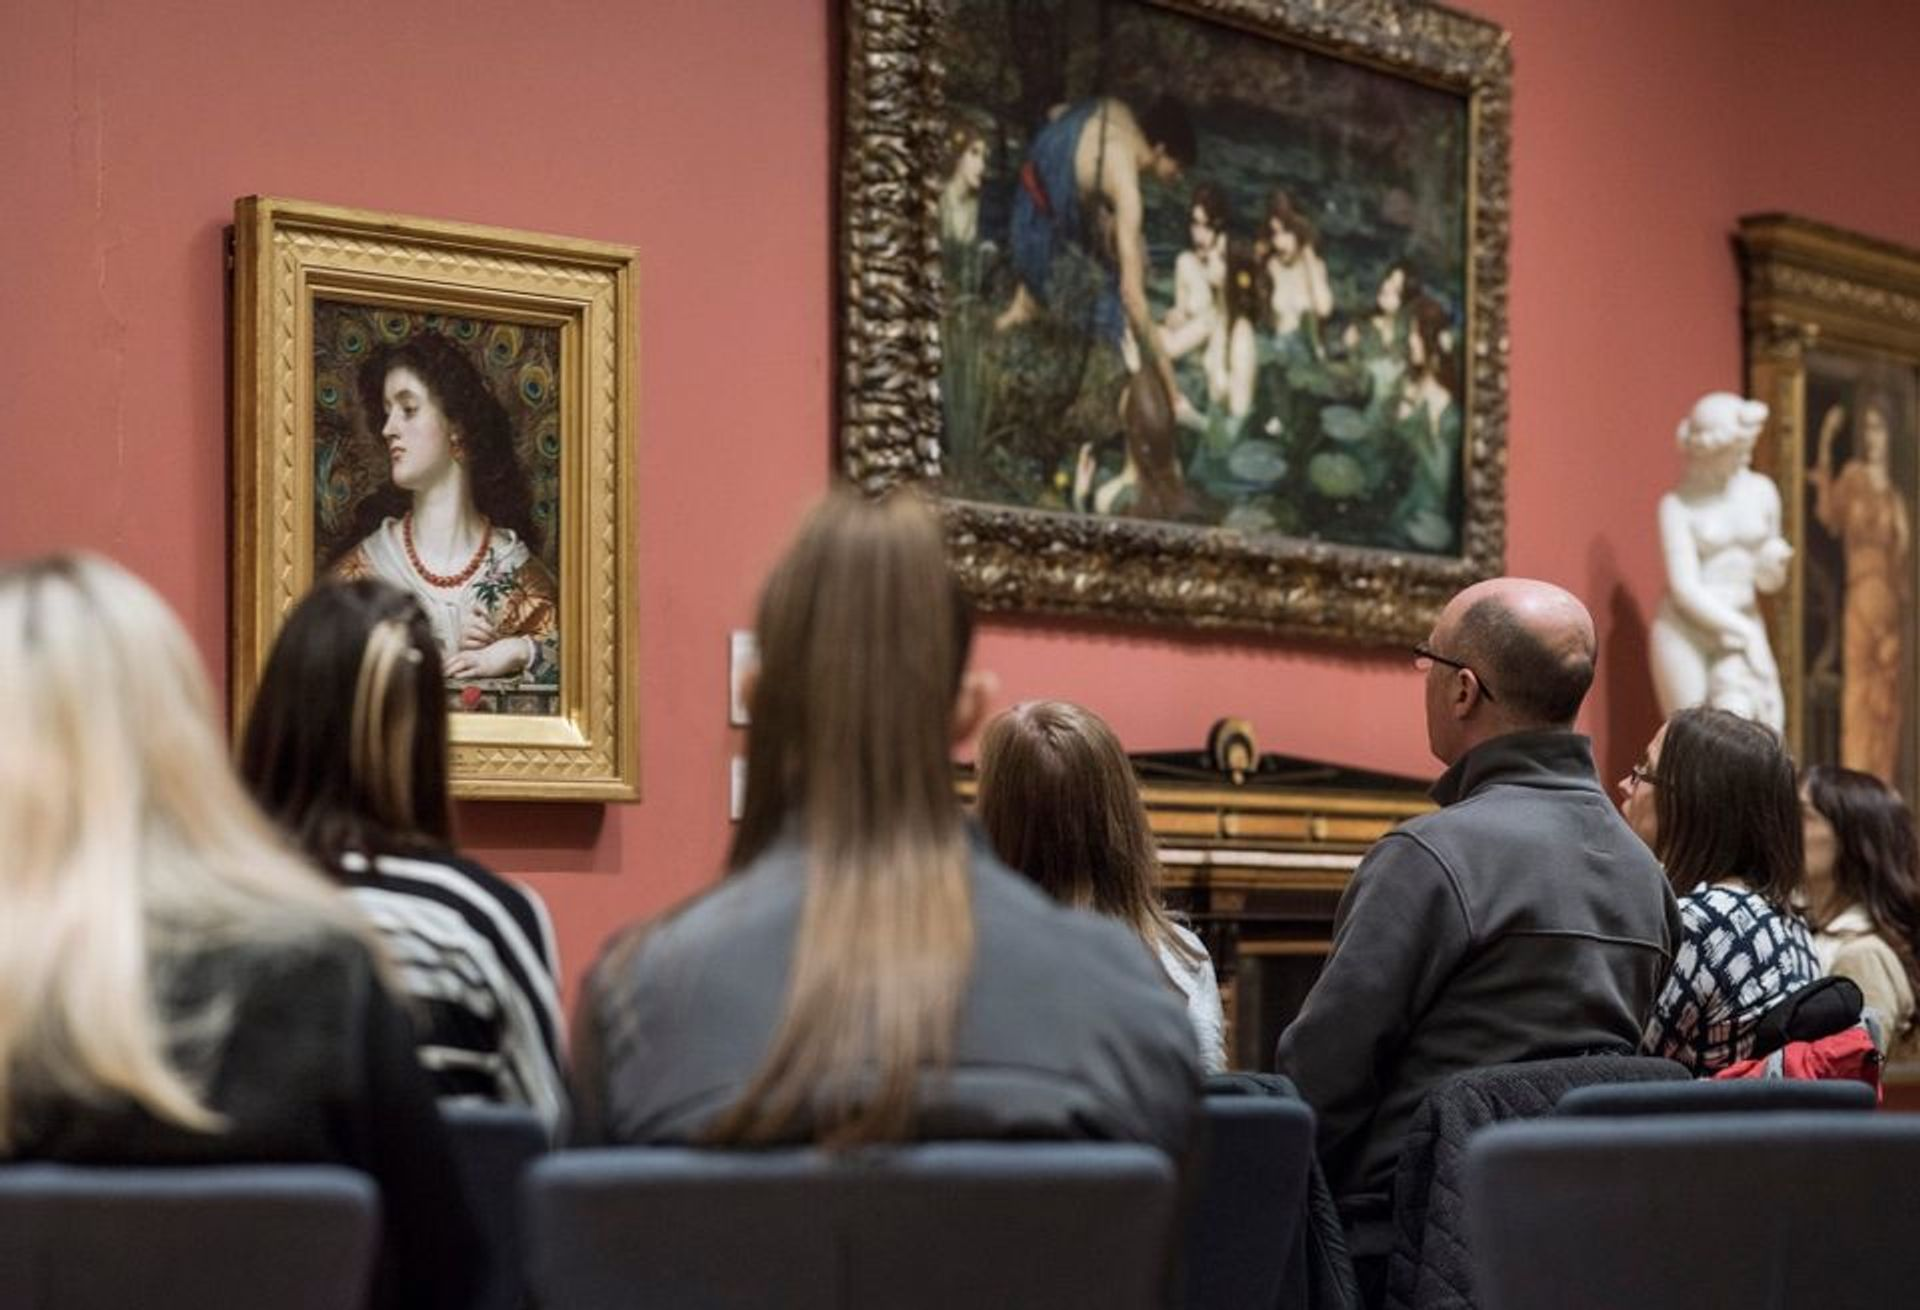 """Visitors to the Manchester Art Gallery sit and look at one work of art for 30 minutes as part of its """"Take Notice"""" series Manchester Art Gallery"""